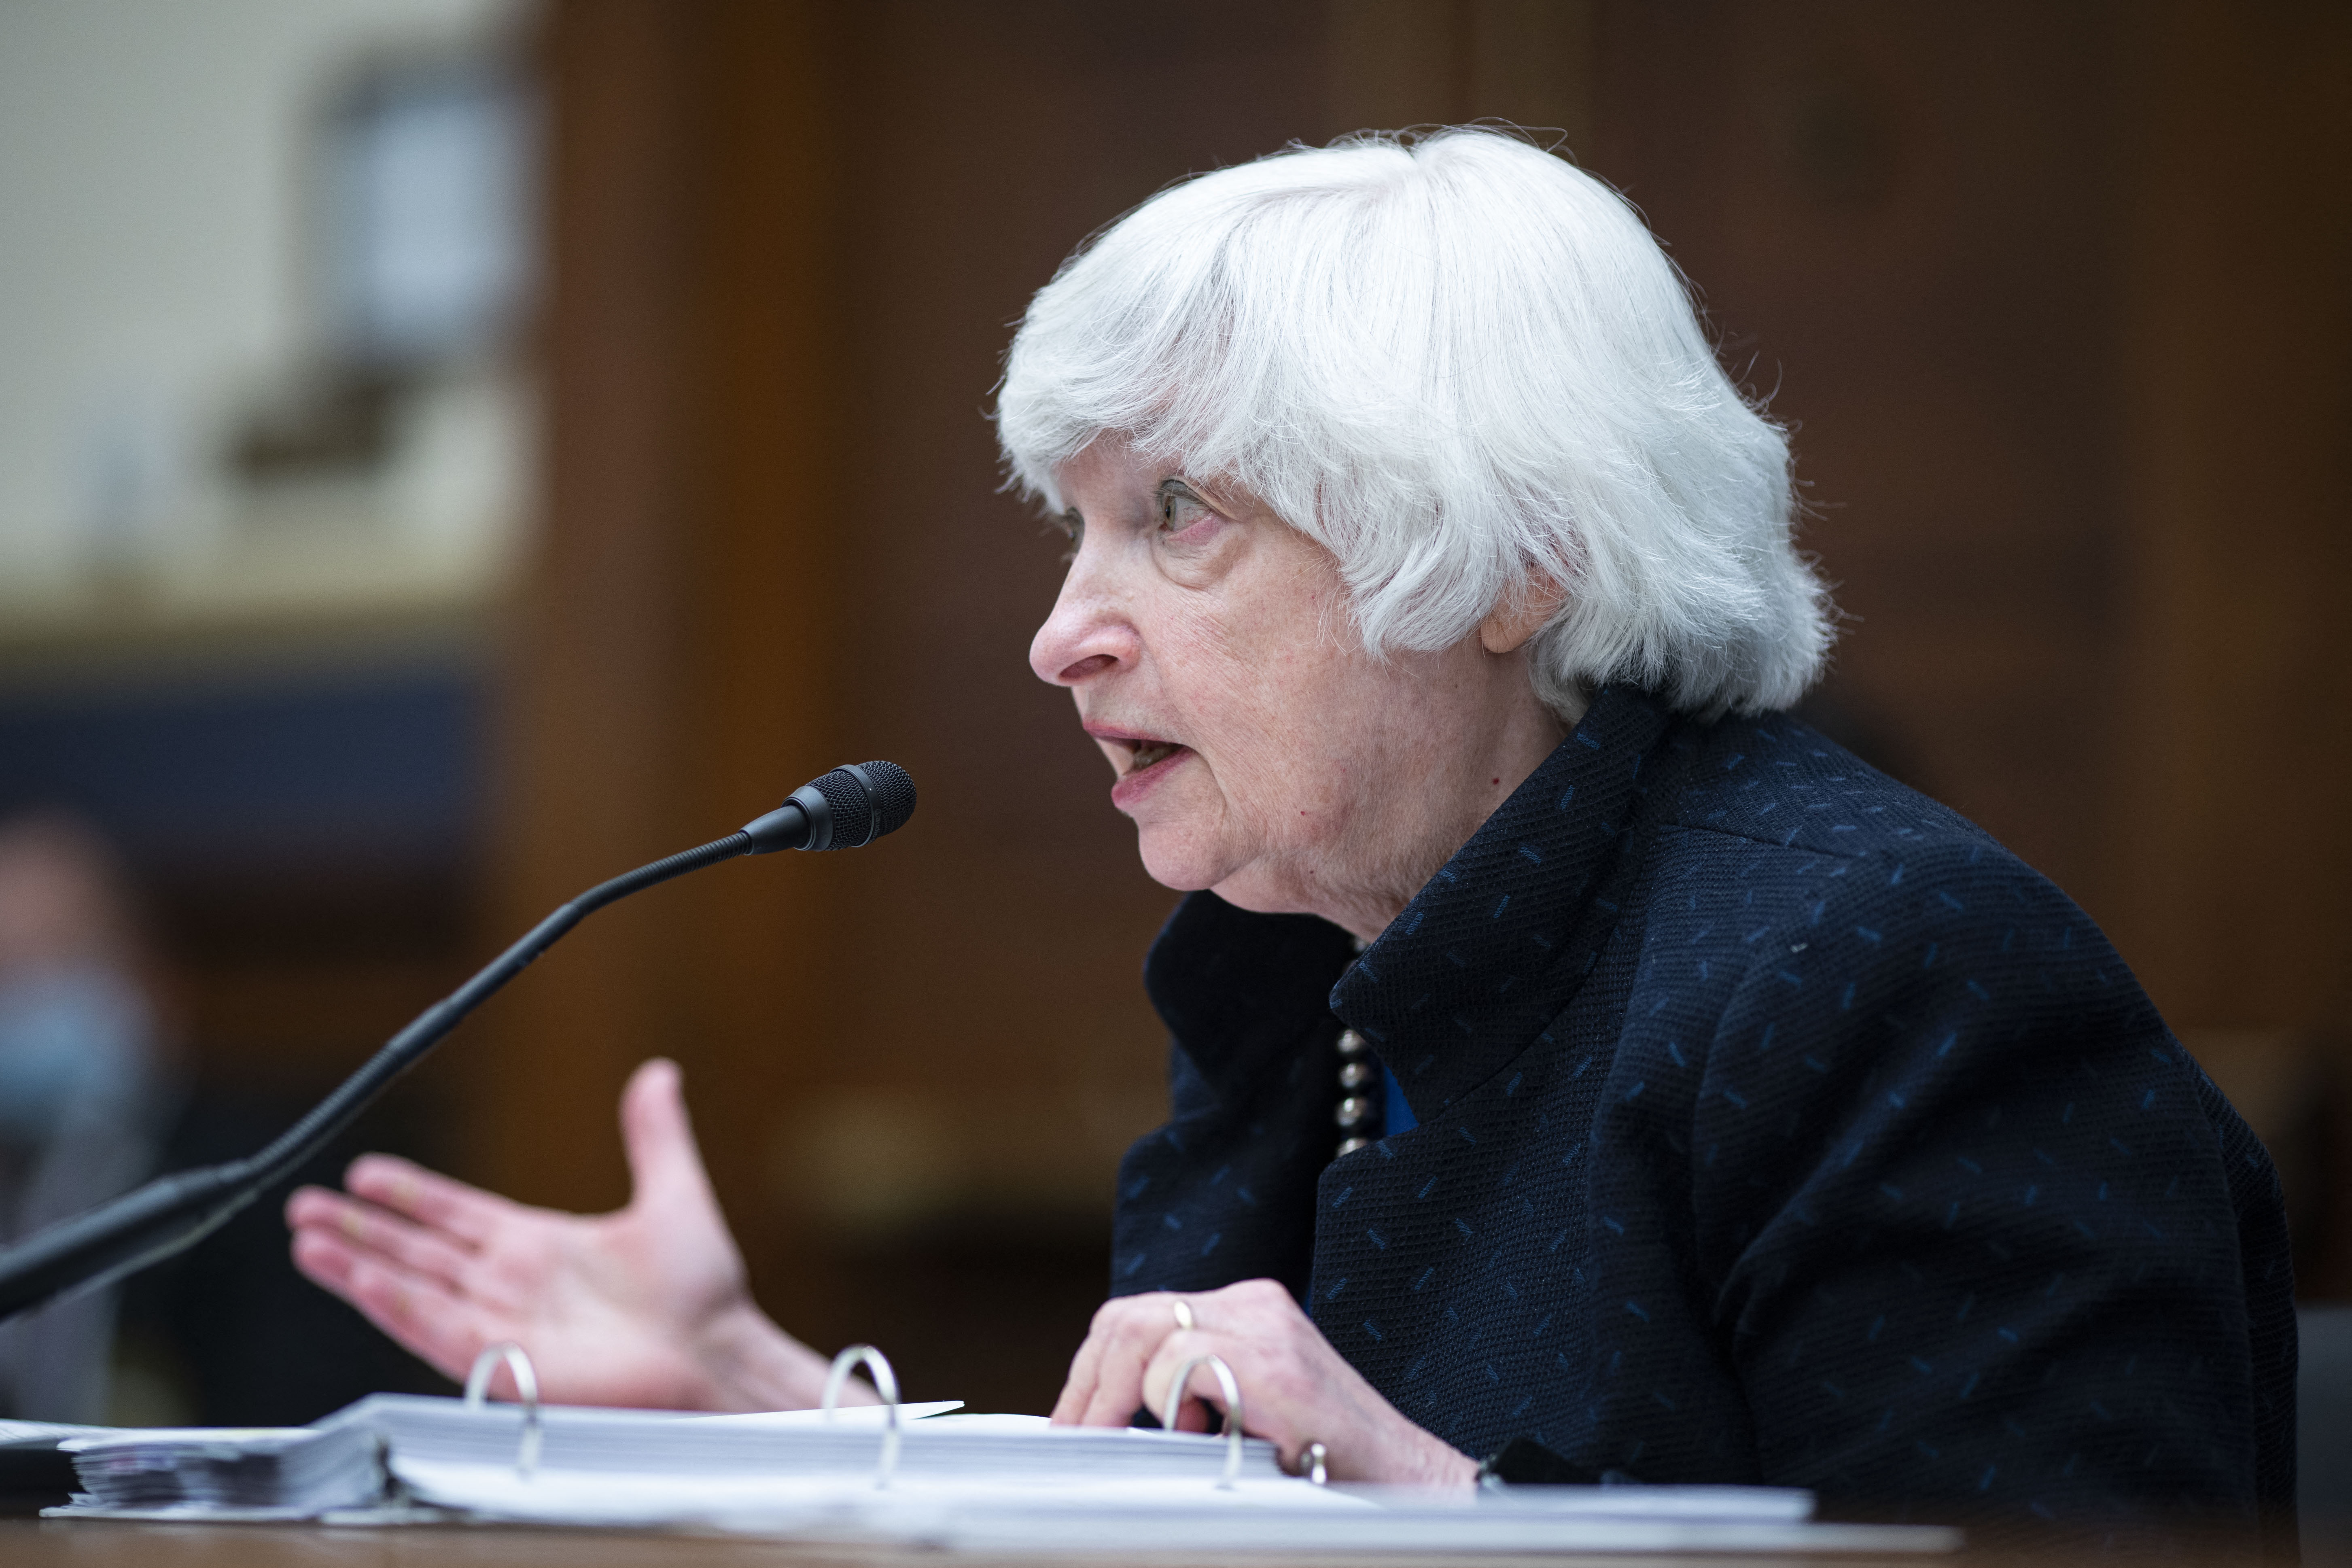 U.S. Treasury Secretary Janet Yellen testifies before the House Oversight And Government Reform Committee hearings on oversight of the Treasury Department's and Federal Reserve's Pandemic Response, on Capitol Hill in Washington, DC, September 30, 2021. (Photo by AL DRAGO/AFP via Getty Images)